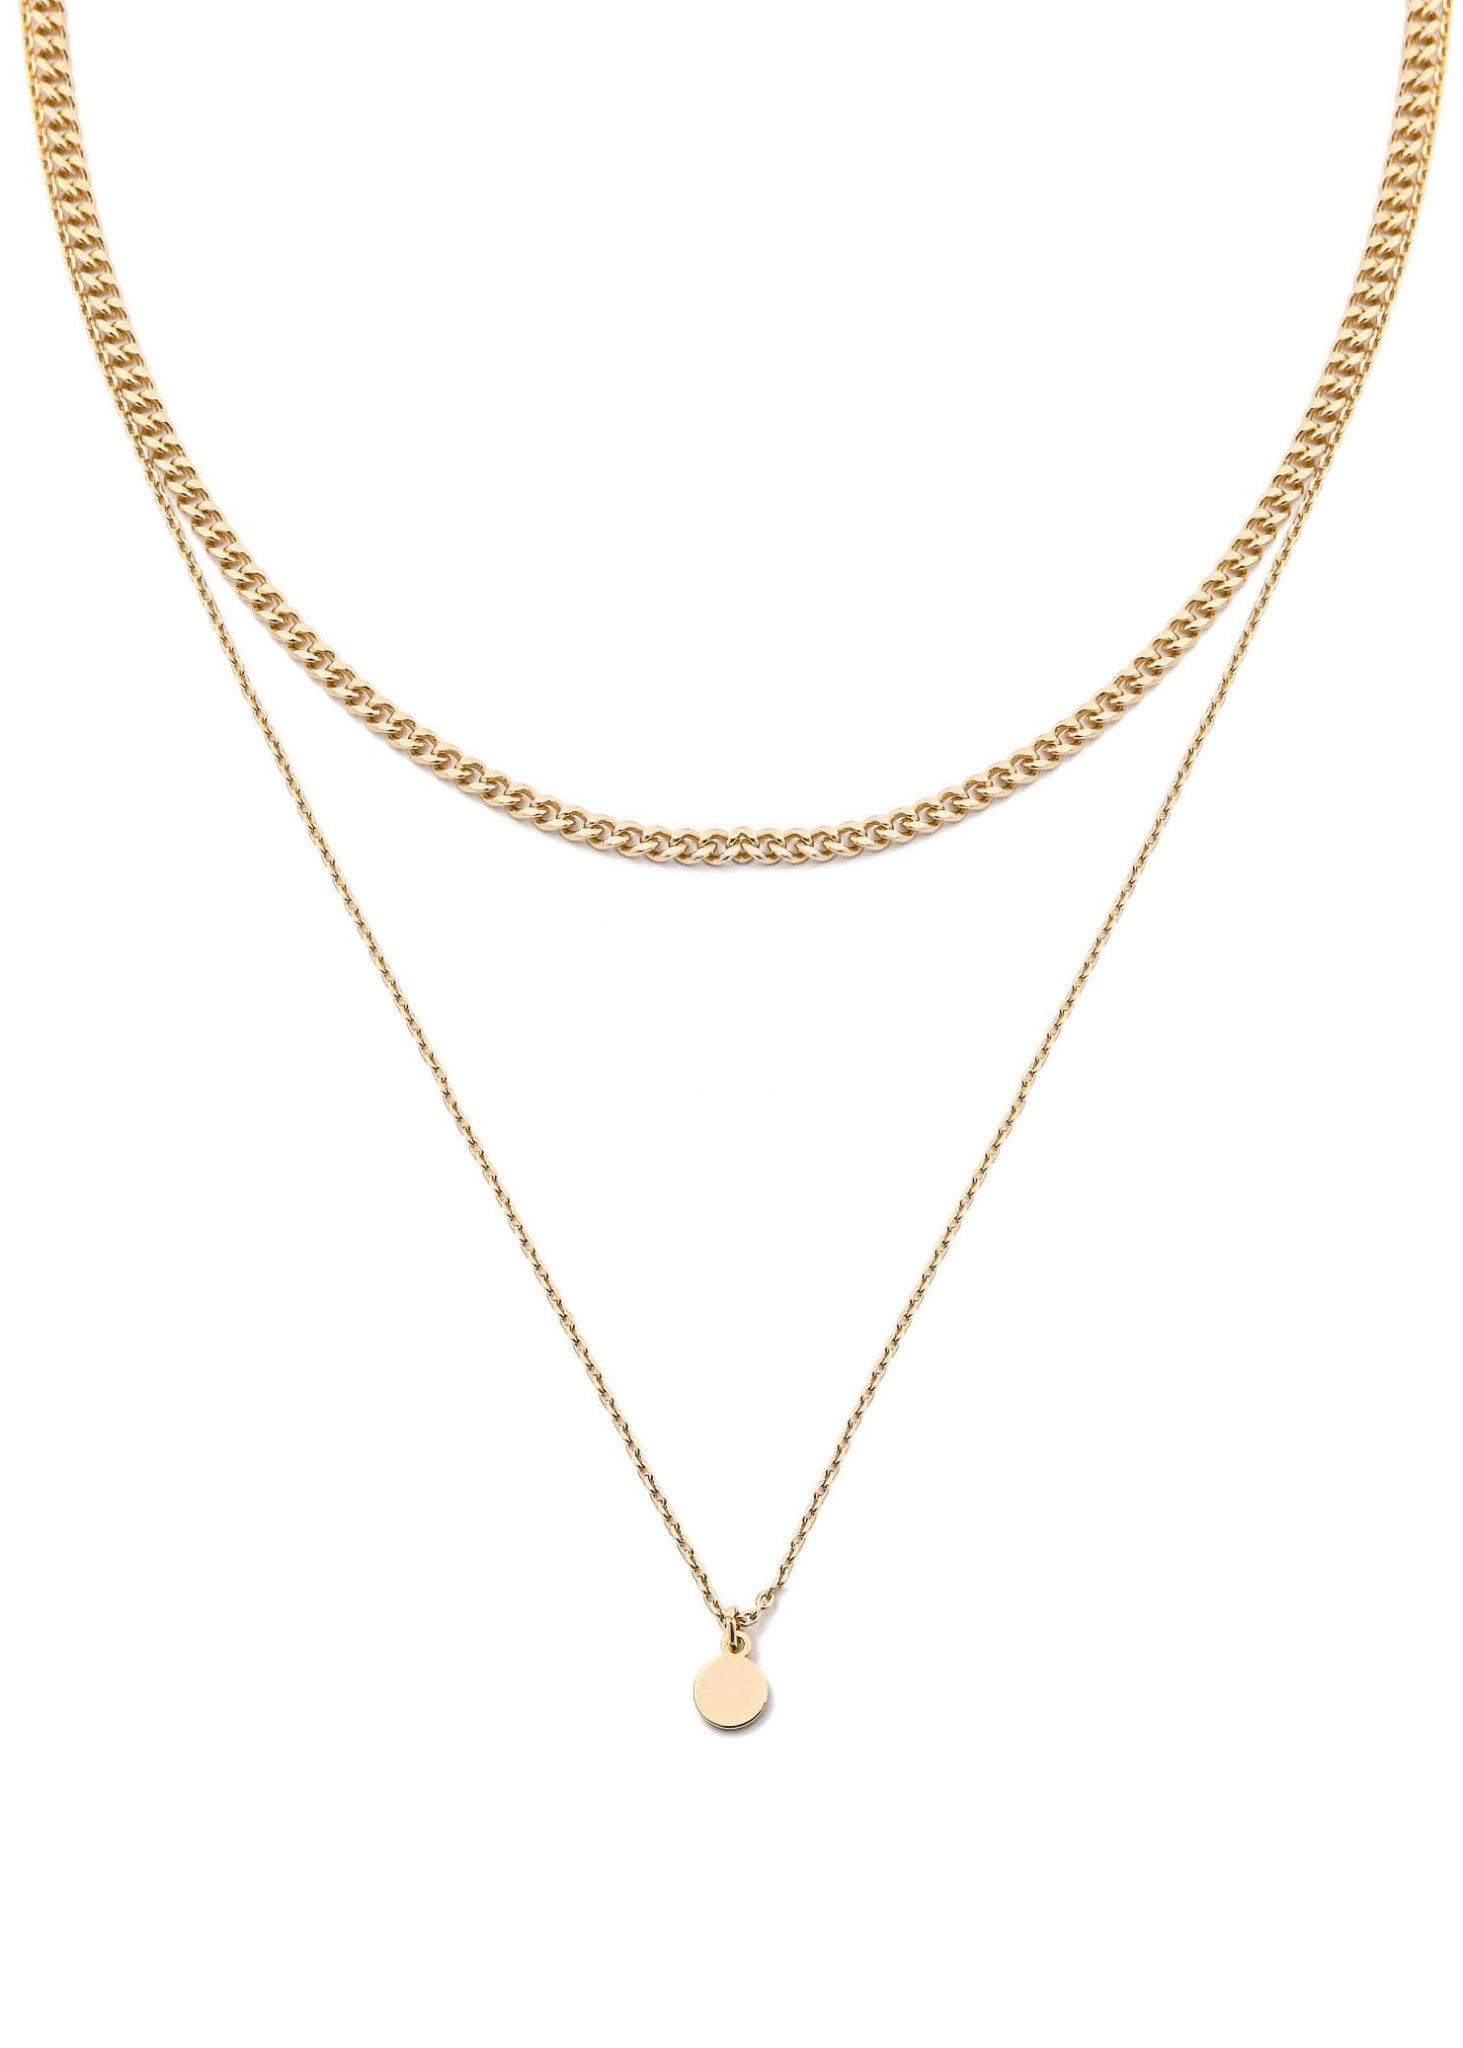 NEVER BETTER LAYERED NECKLACE